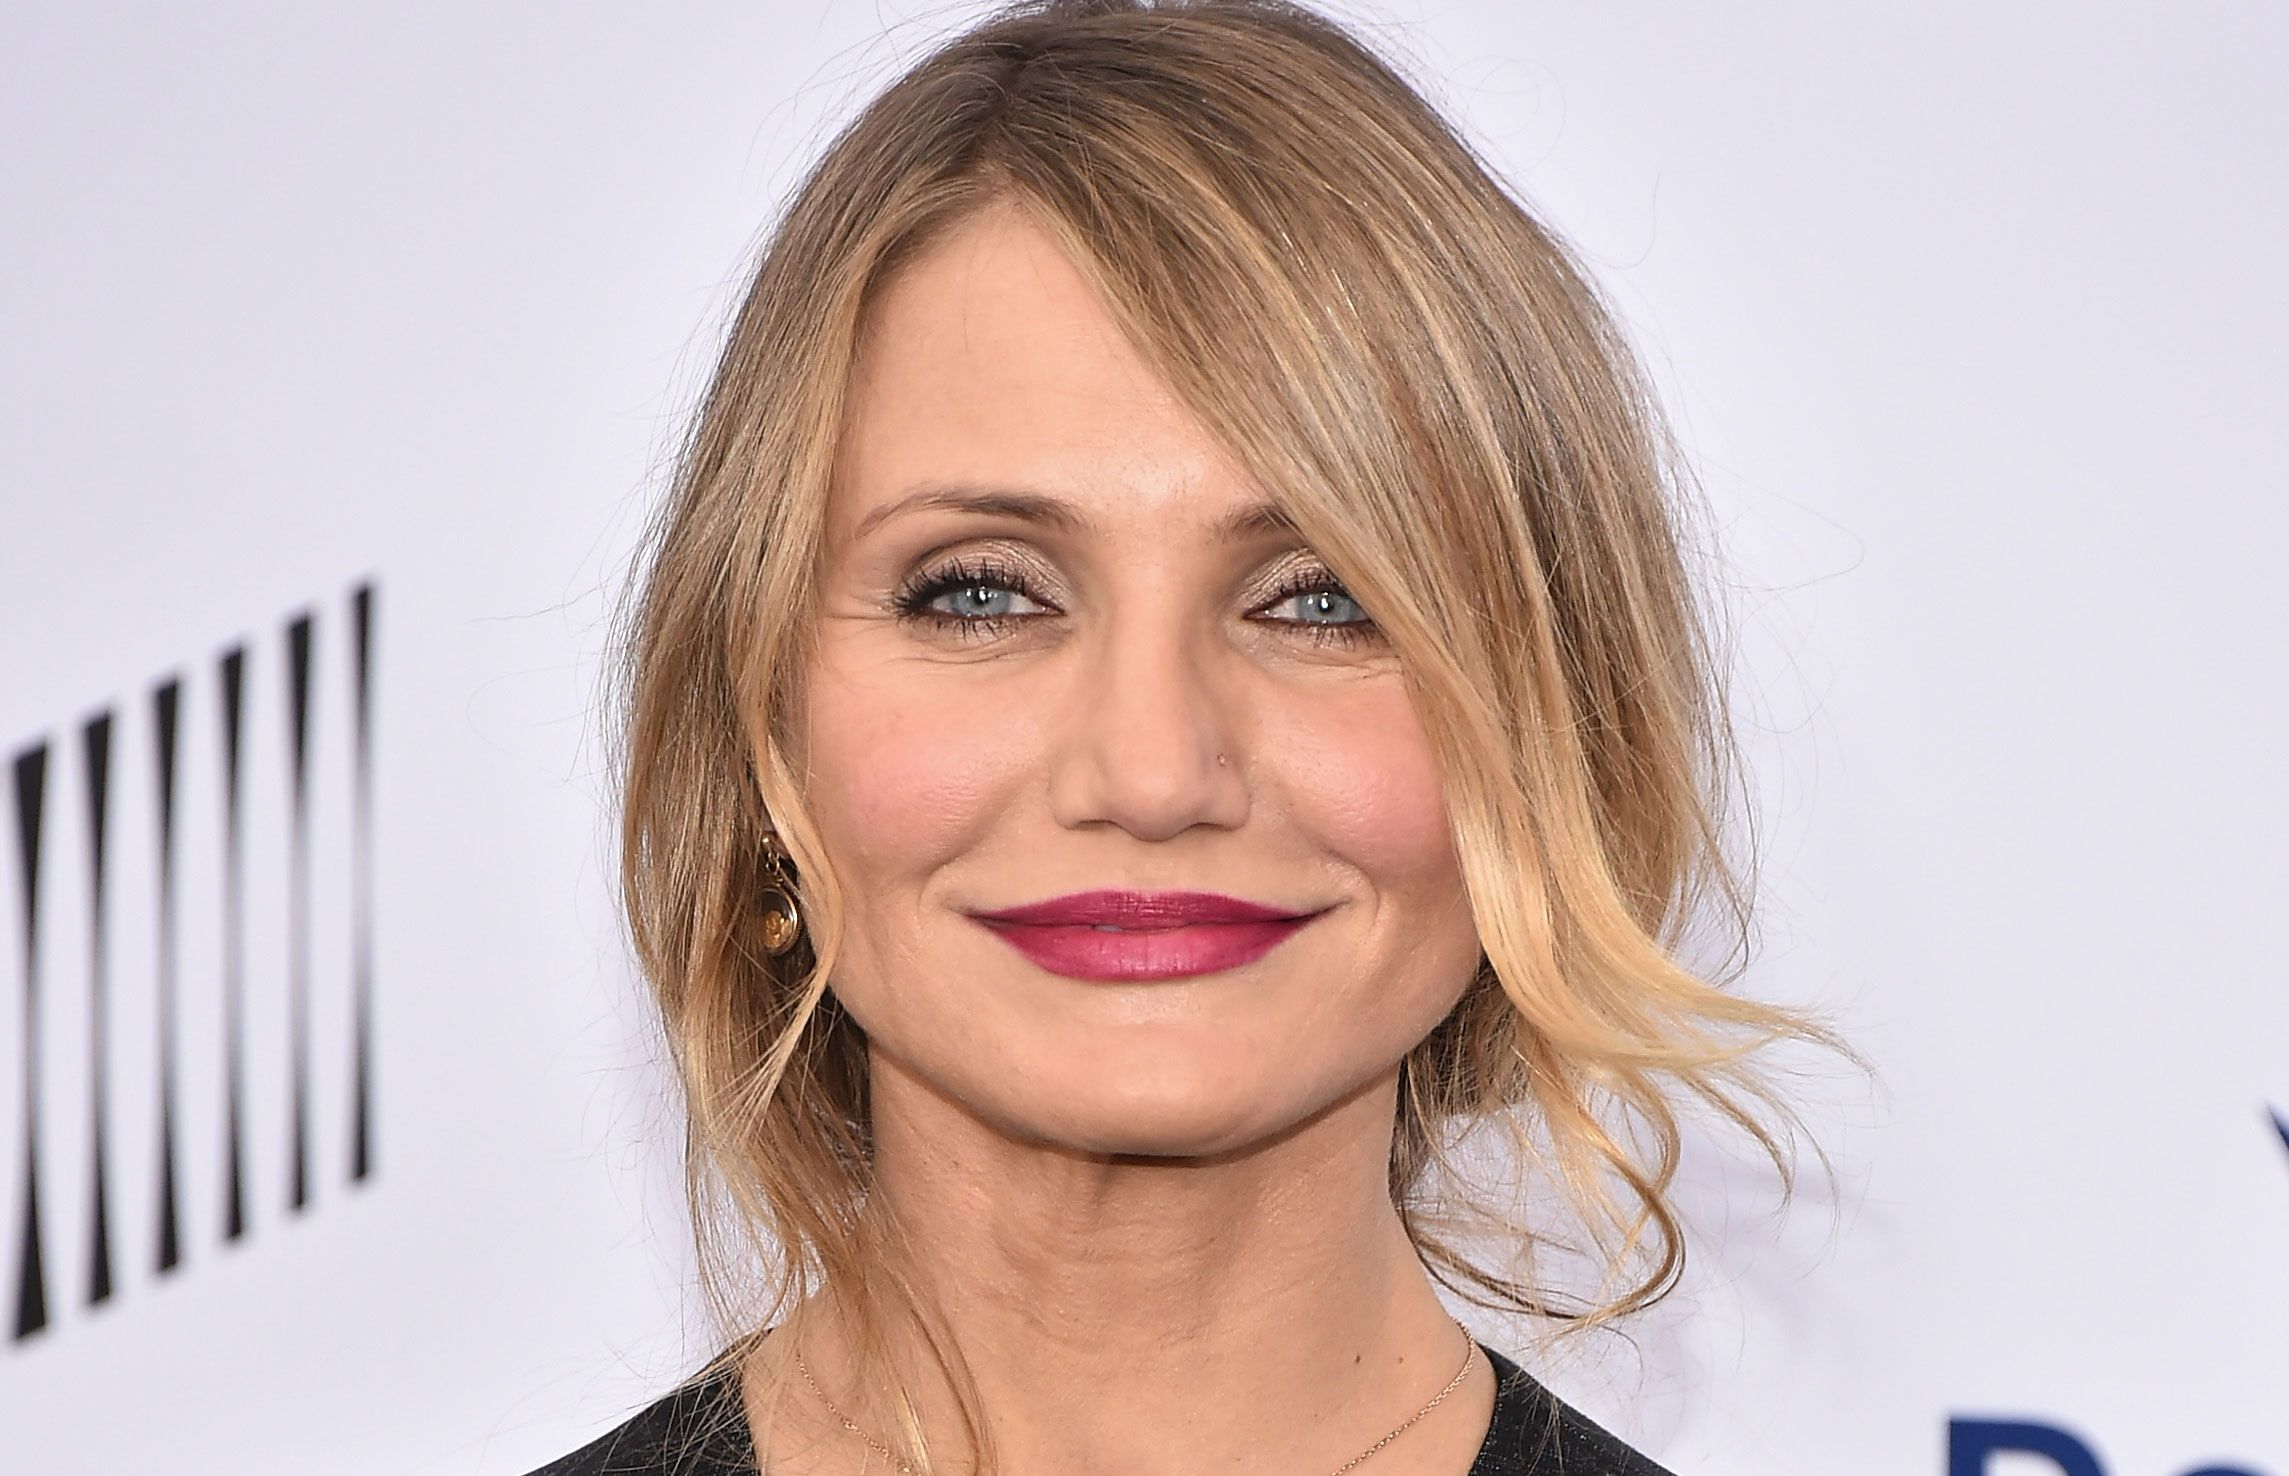 cameron diaz youngcameron diaz instagram, cameron diaz movies, cameron diaz young, cameron diaz mask, cameron diaz films, cameron diaz height, cameron diaz wiki, cameron diaz filme, cameron diaz book, cameron diaz style, cameron diaz рост, cameron diaz body book, cameron diaz vse filmi, cameron diaz wikipedia, cameron diaz биография, cameron diaz the holiday, cameron diaz фото, cameron diaz дети, cameron diaz movies list, cameron diaz biceps